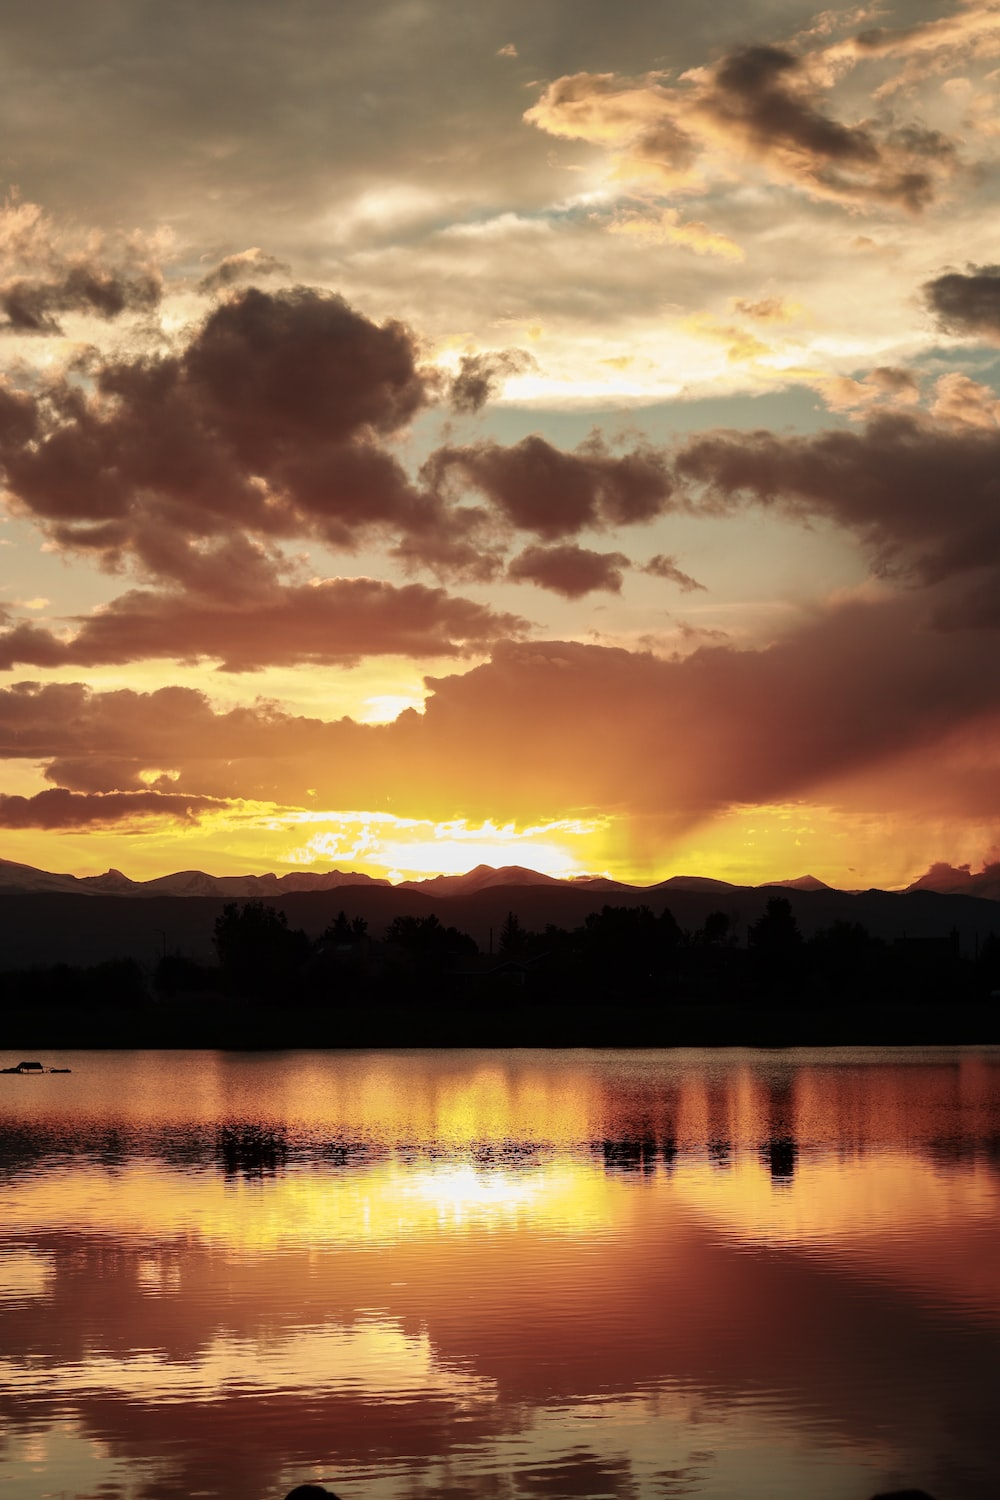 silhouette of mountain and trees near lake under orange sky and clouds